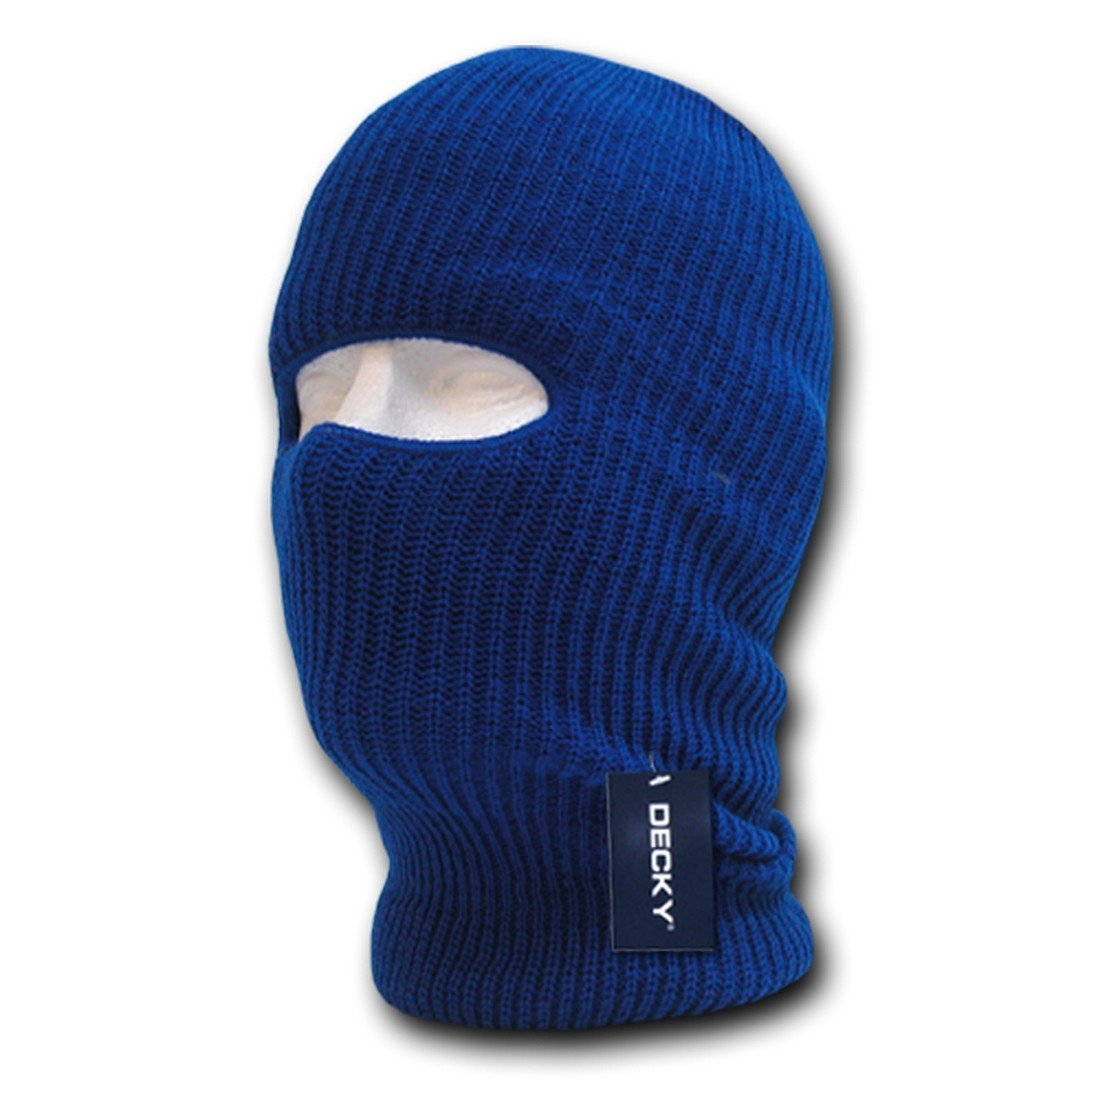 Decky Inc Tactical one Hole Braided Knitting Winter Mask Skull Hat 971 MASK-971